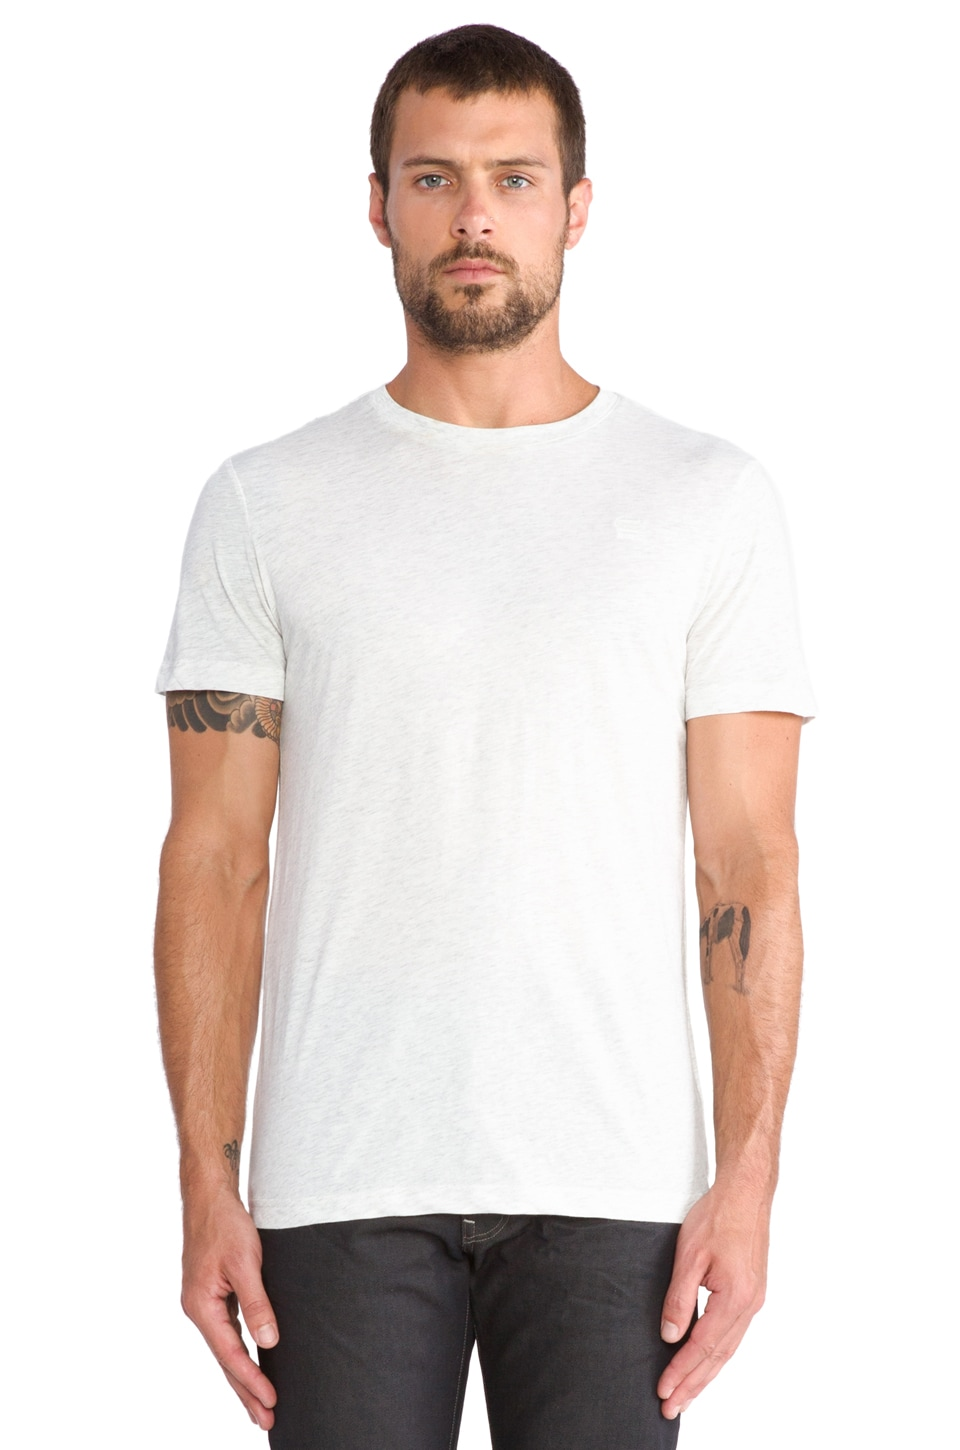 G-Star 2 Pack Crew Neck Tees in Heathered White